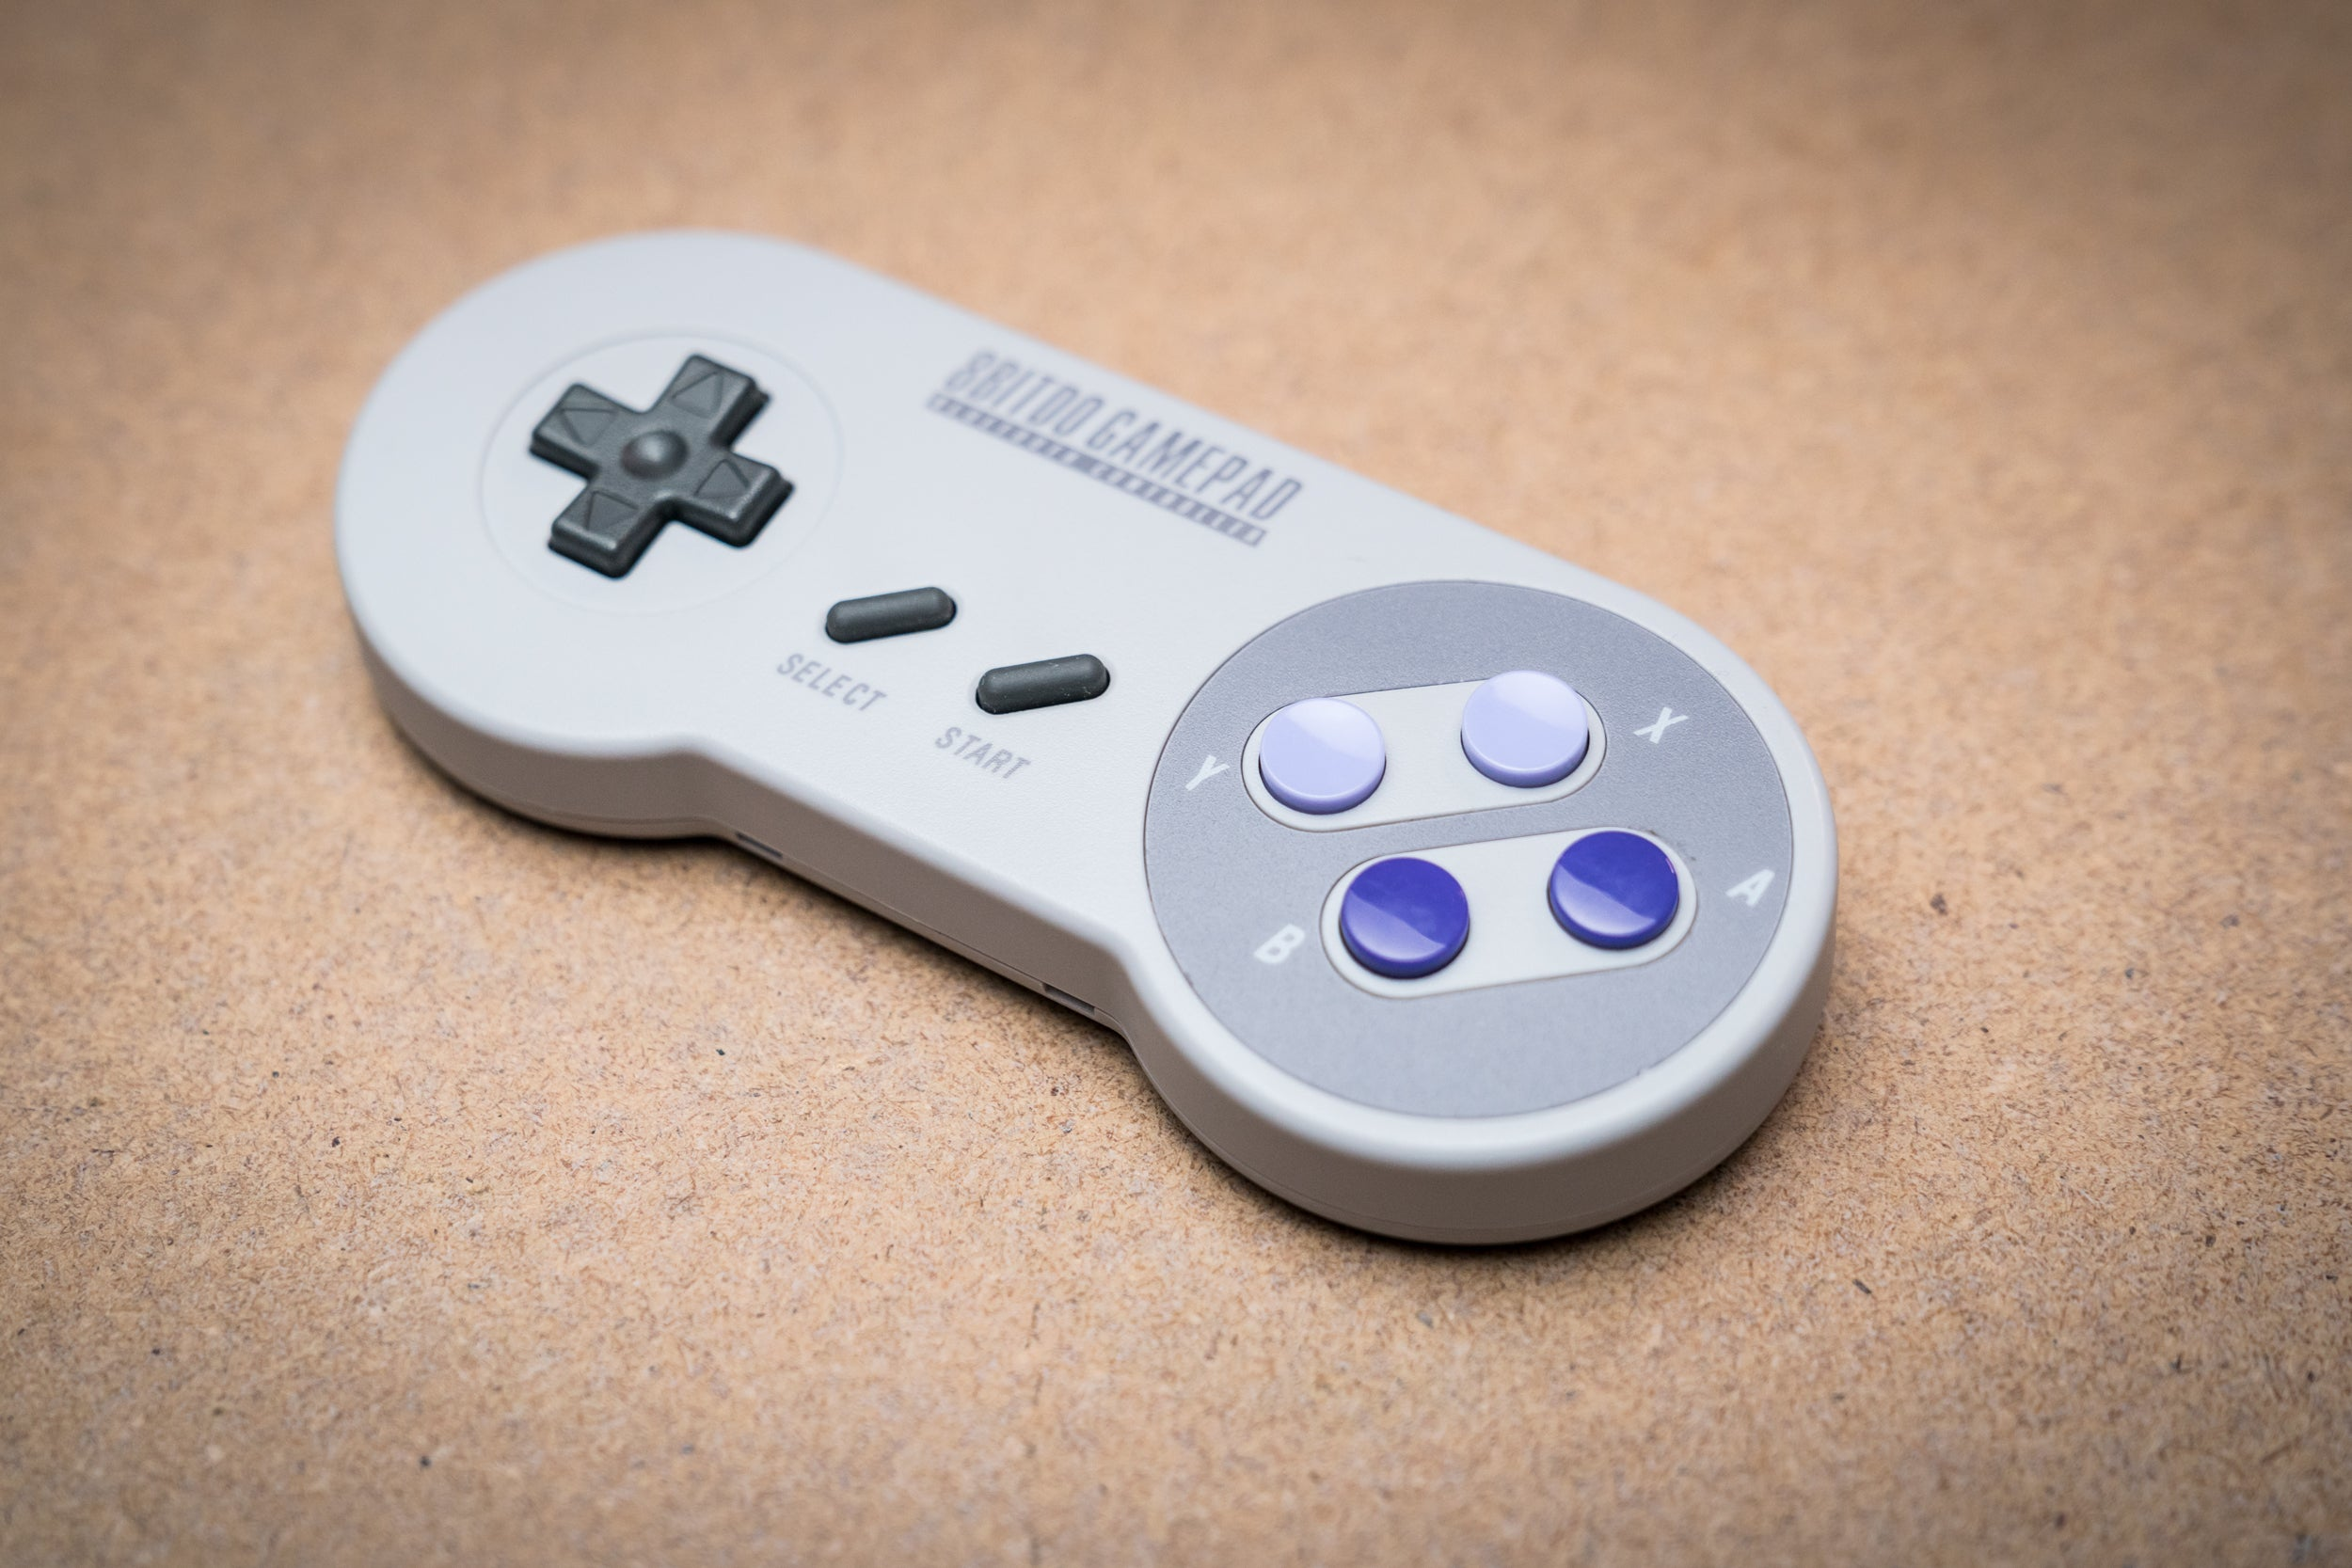 8bitdo Sn30 Review A Lovingly Crafted Super Nintendo Style Nes30 Pro Retro Bluetooth Controller For Switch Ios Android Pc Mac Gaming Pcworld